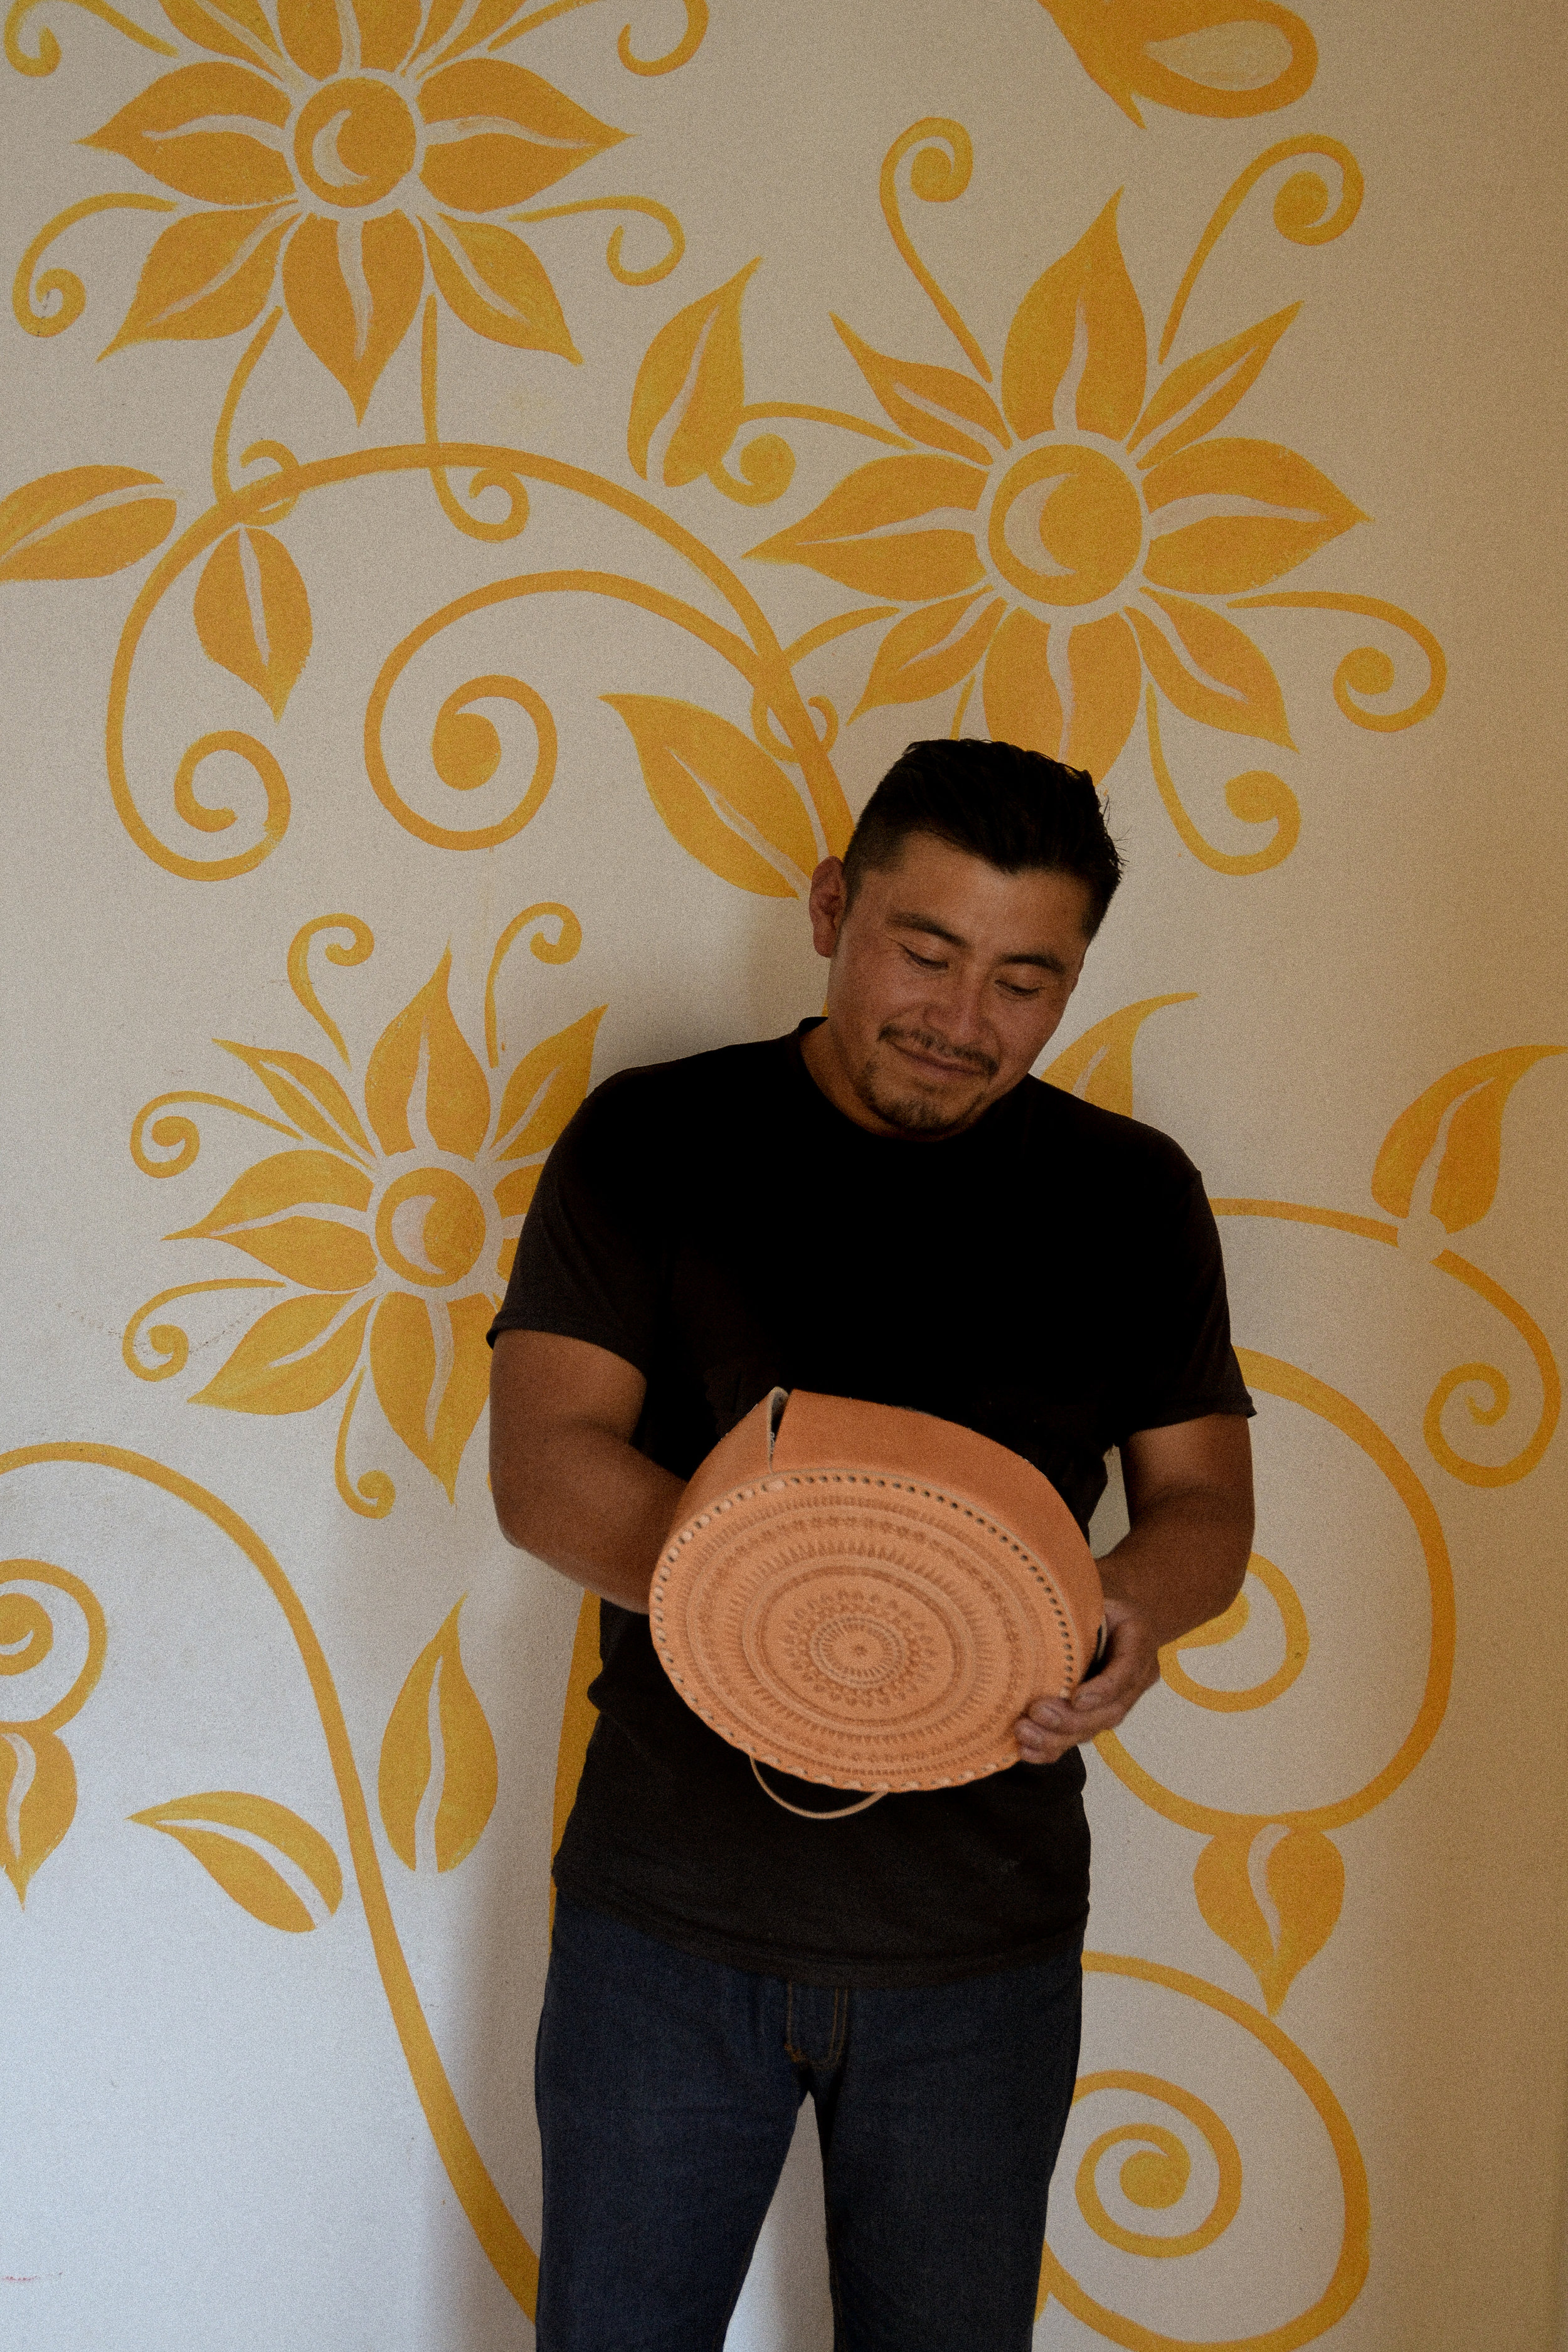 Miguel has worked in construction for years now and it was only a few years ago that he discovered his passion for leather. He is a very talented leather worker and his main job is treating the leather prior to production.